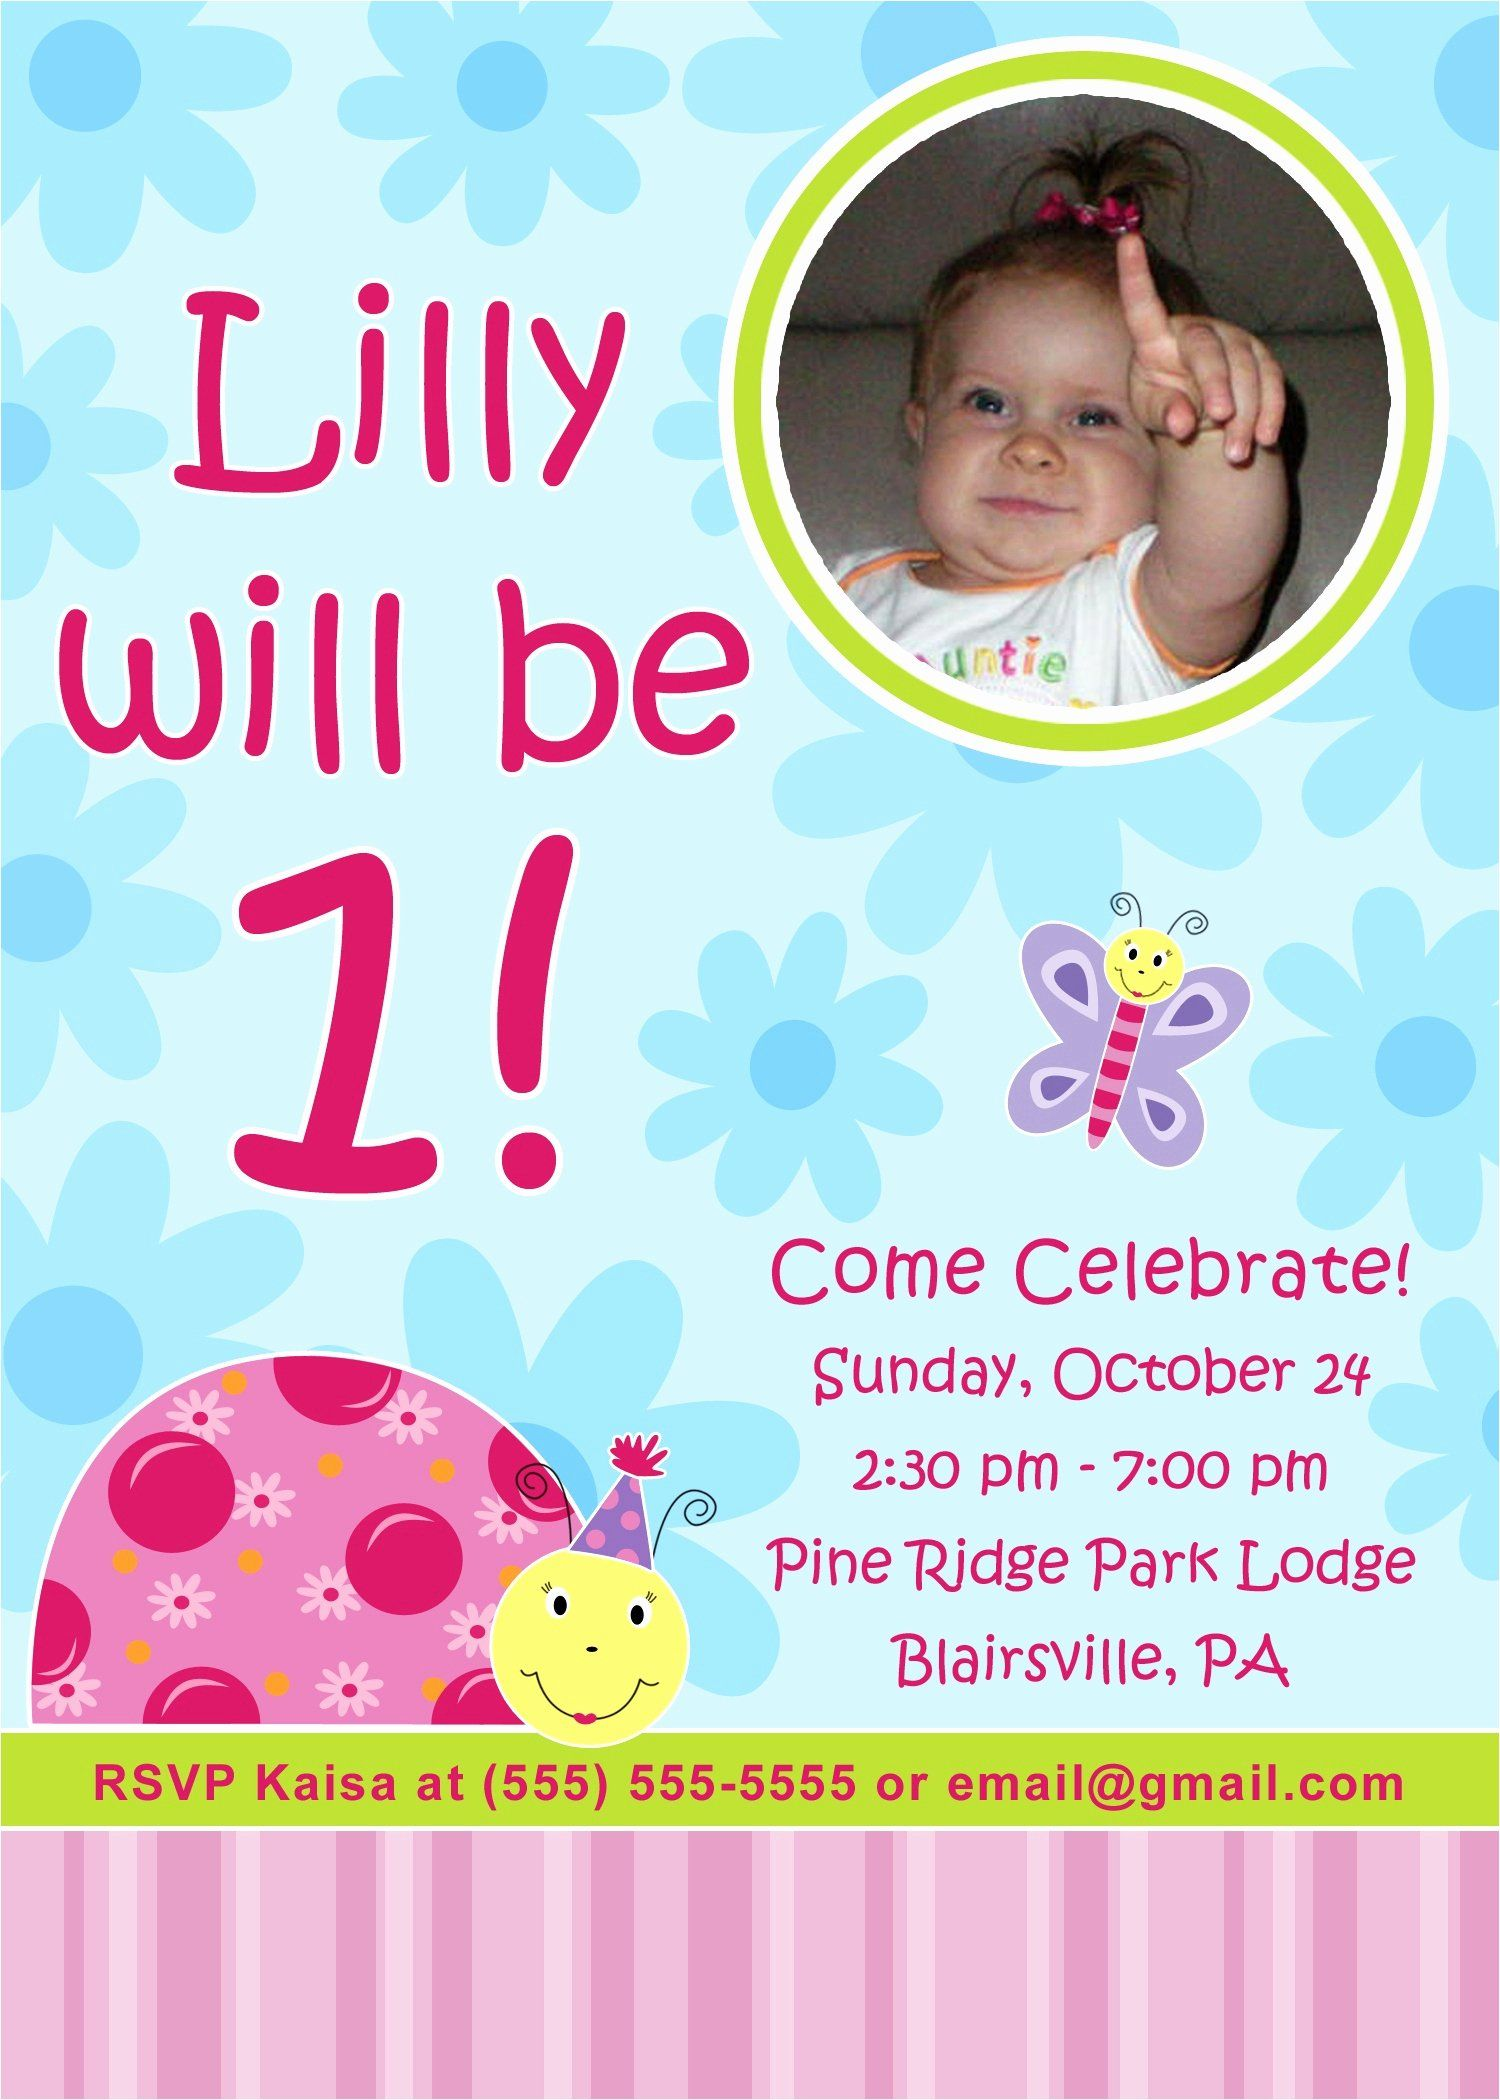 Editable 1st Birthday Invitation Card Free Download Lovely Editable In 2020 Birthday Invitation Card Template Baby Birthday Invitations Happy Birthday Invitation Card